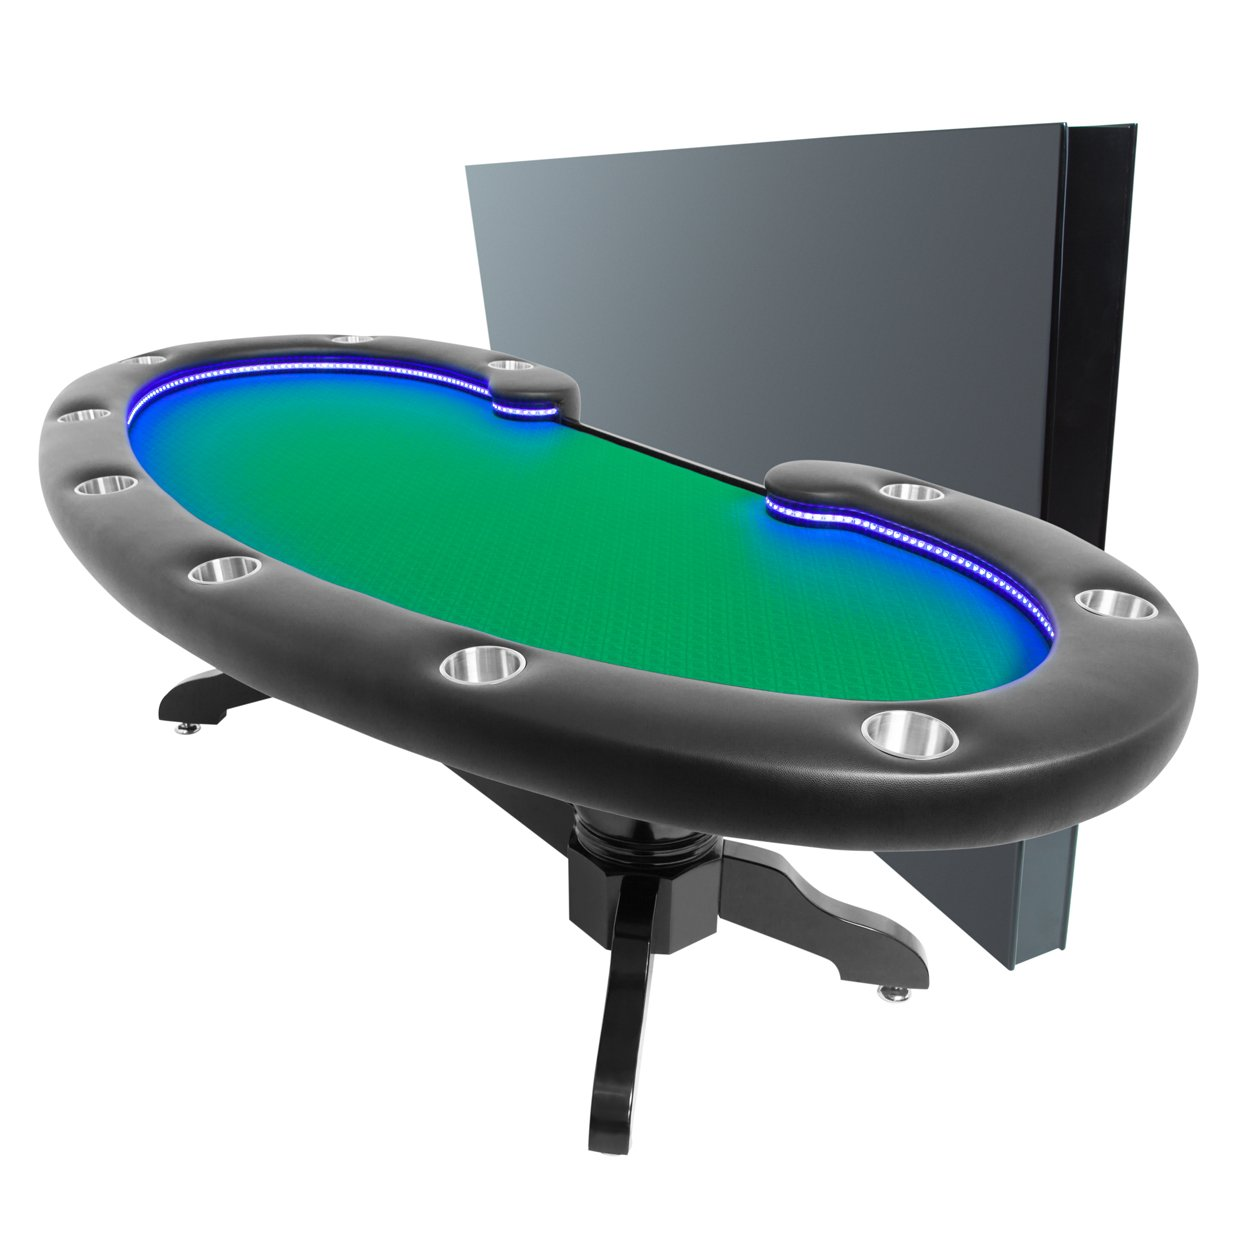 BBO Poker Lumen HD Lighted Poker Table for 10 Players with Green Speed Cloth Playing Surface, 101.5 x 46-Inch Oval, Includes Matching Dining Top